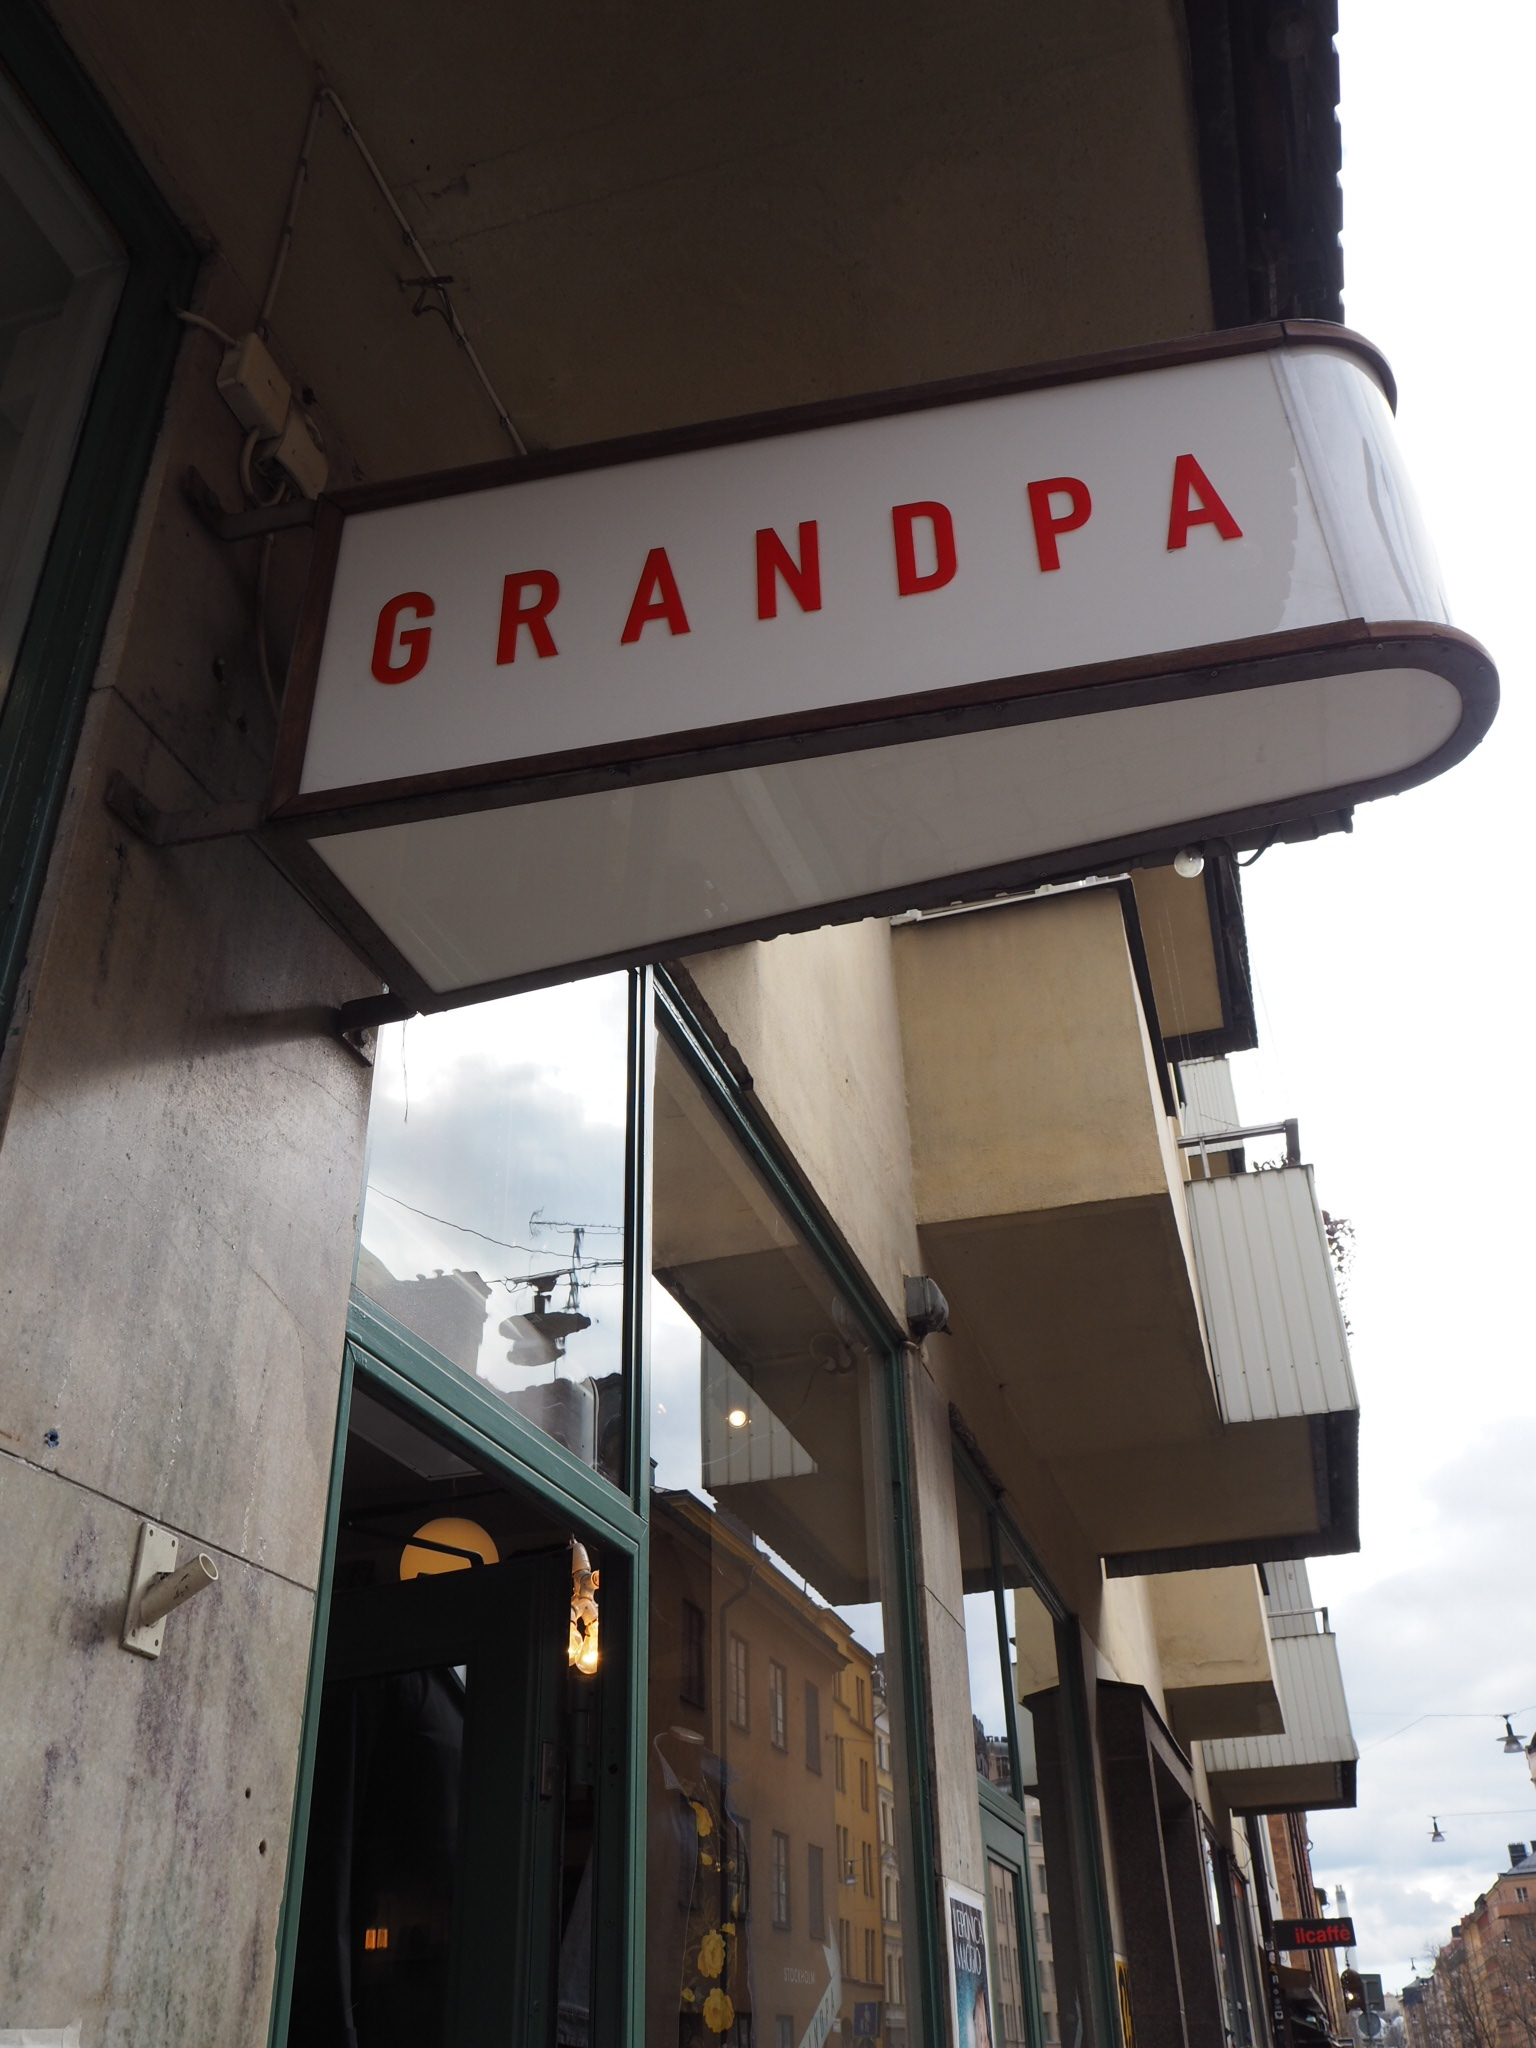 Contemporary homeware/ fashion boutique-  Grandpa, Stockholmm Sweden